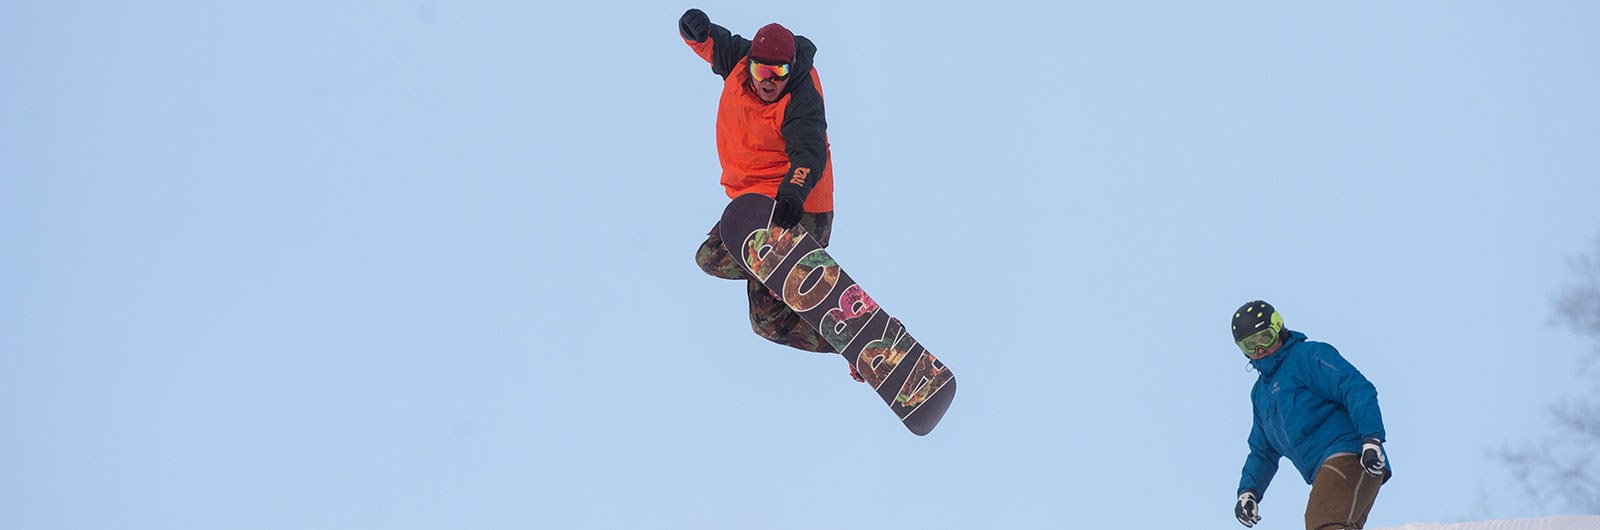 Snowboarder in the air off a jump